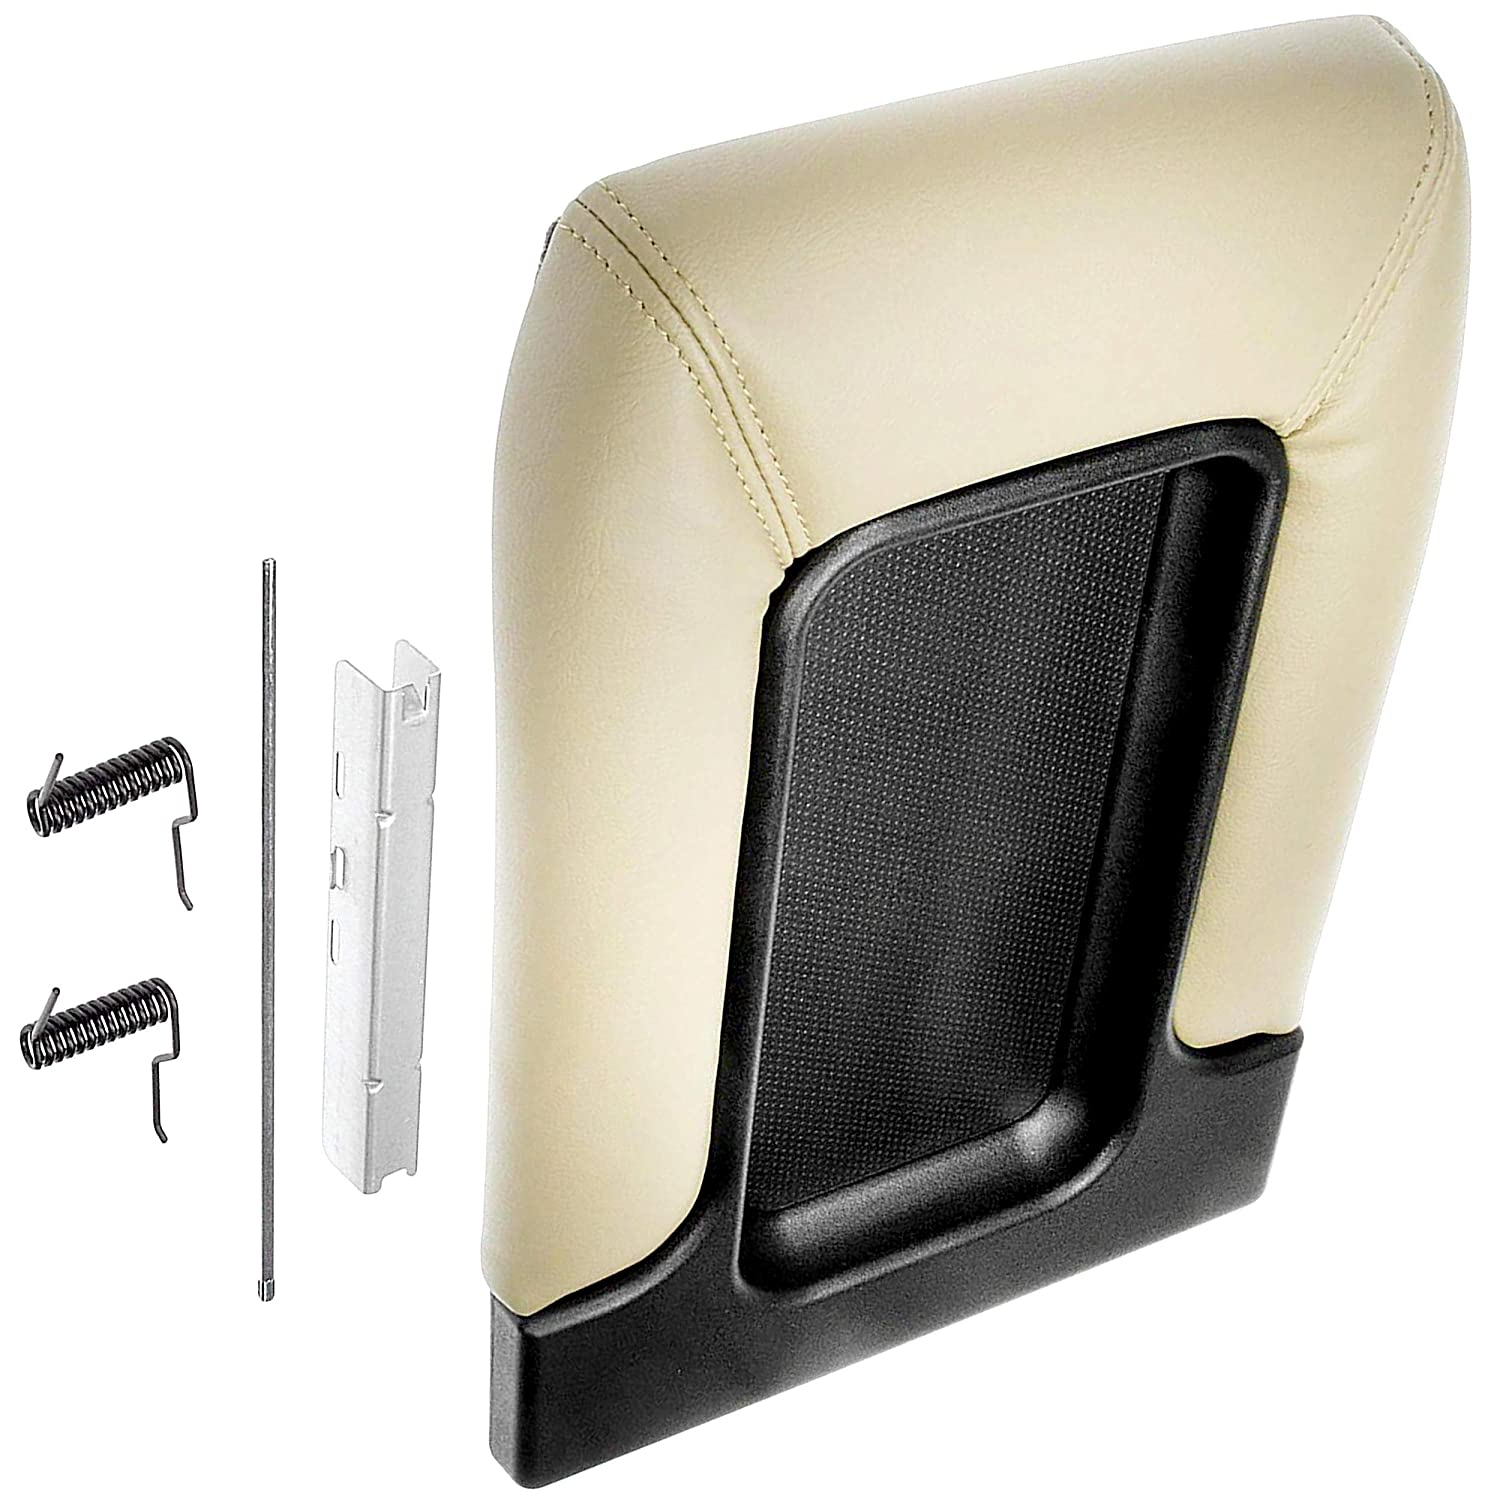 Replaces 19127366 APDTY 035923 Center Console Hinge /& Faux Leather Lid Armrest Replacement Kit Tan Color Fits 2001-2007 Silverado or Sierra 07 Classic 01-06 Escalade Avalanche Suburban Tahoe Yukon